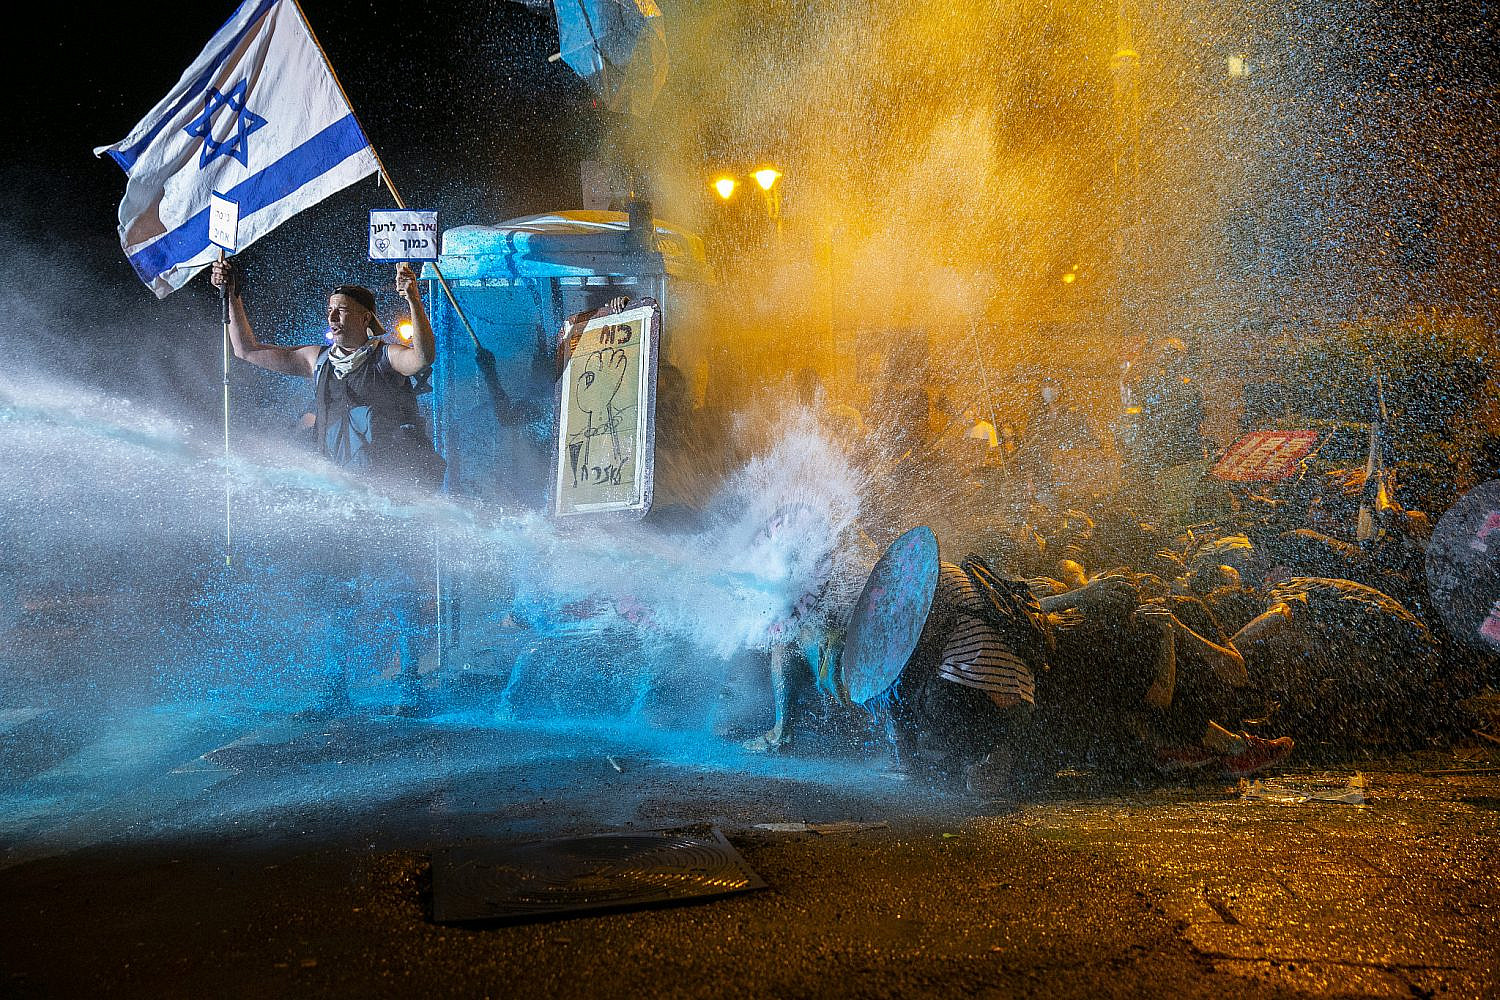 Israeli Police use a water cannon to disperse demonstrators during a protest against Prime Minister Benjamin Netanyahu outside the PM's residence in Jerusalem, July 25, 2020. (Olivier Fitoussi/Flash90)